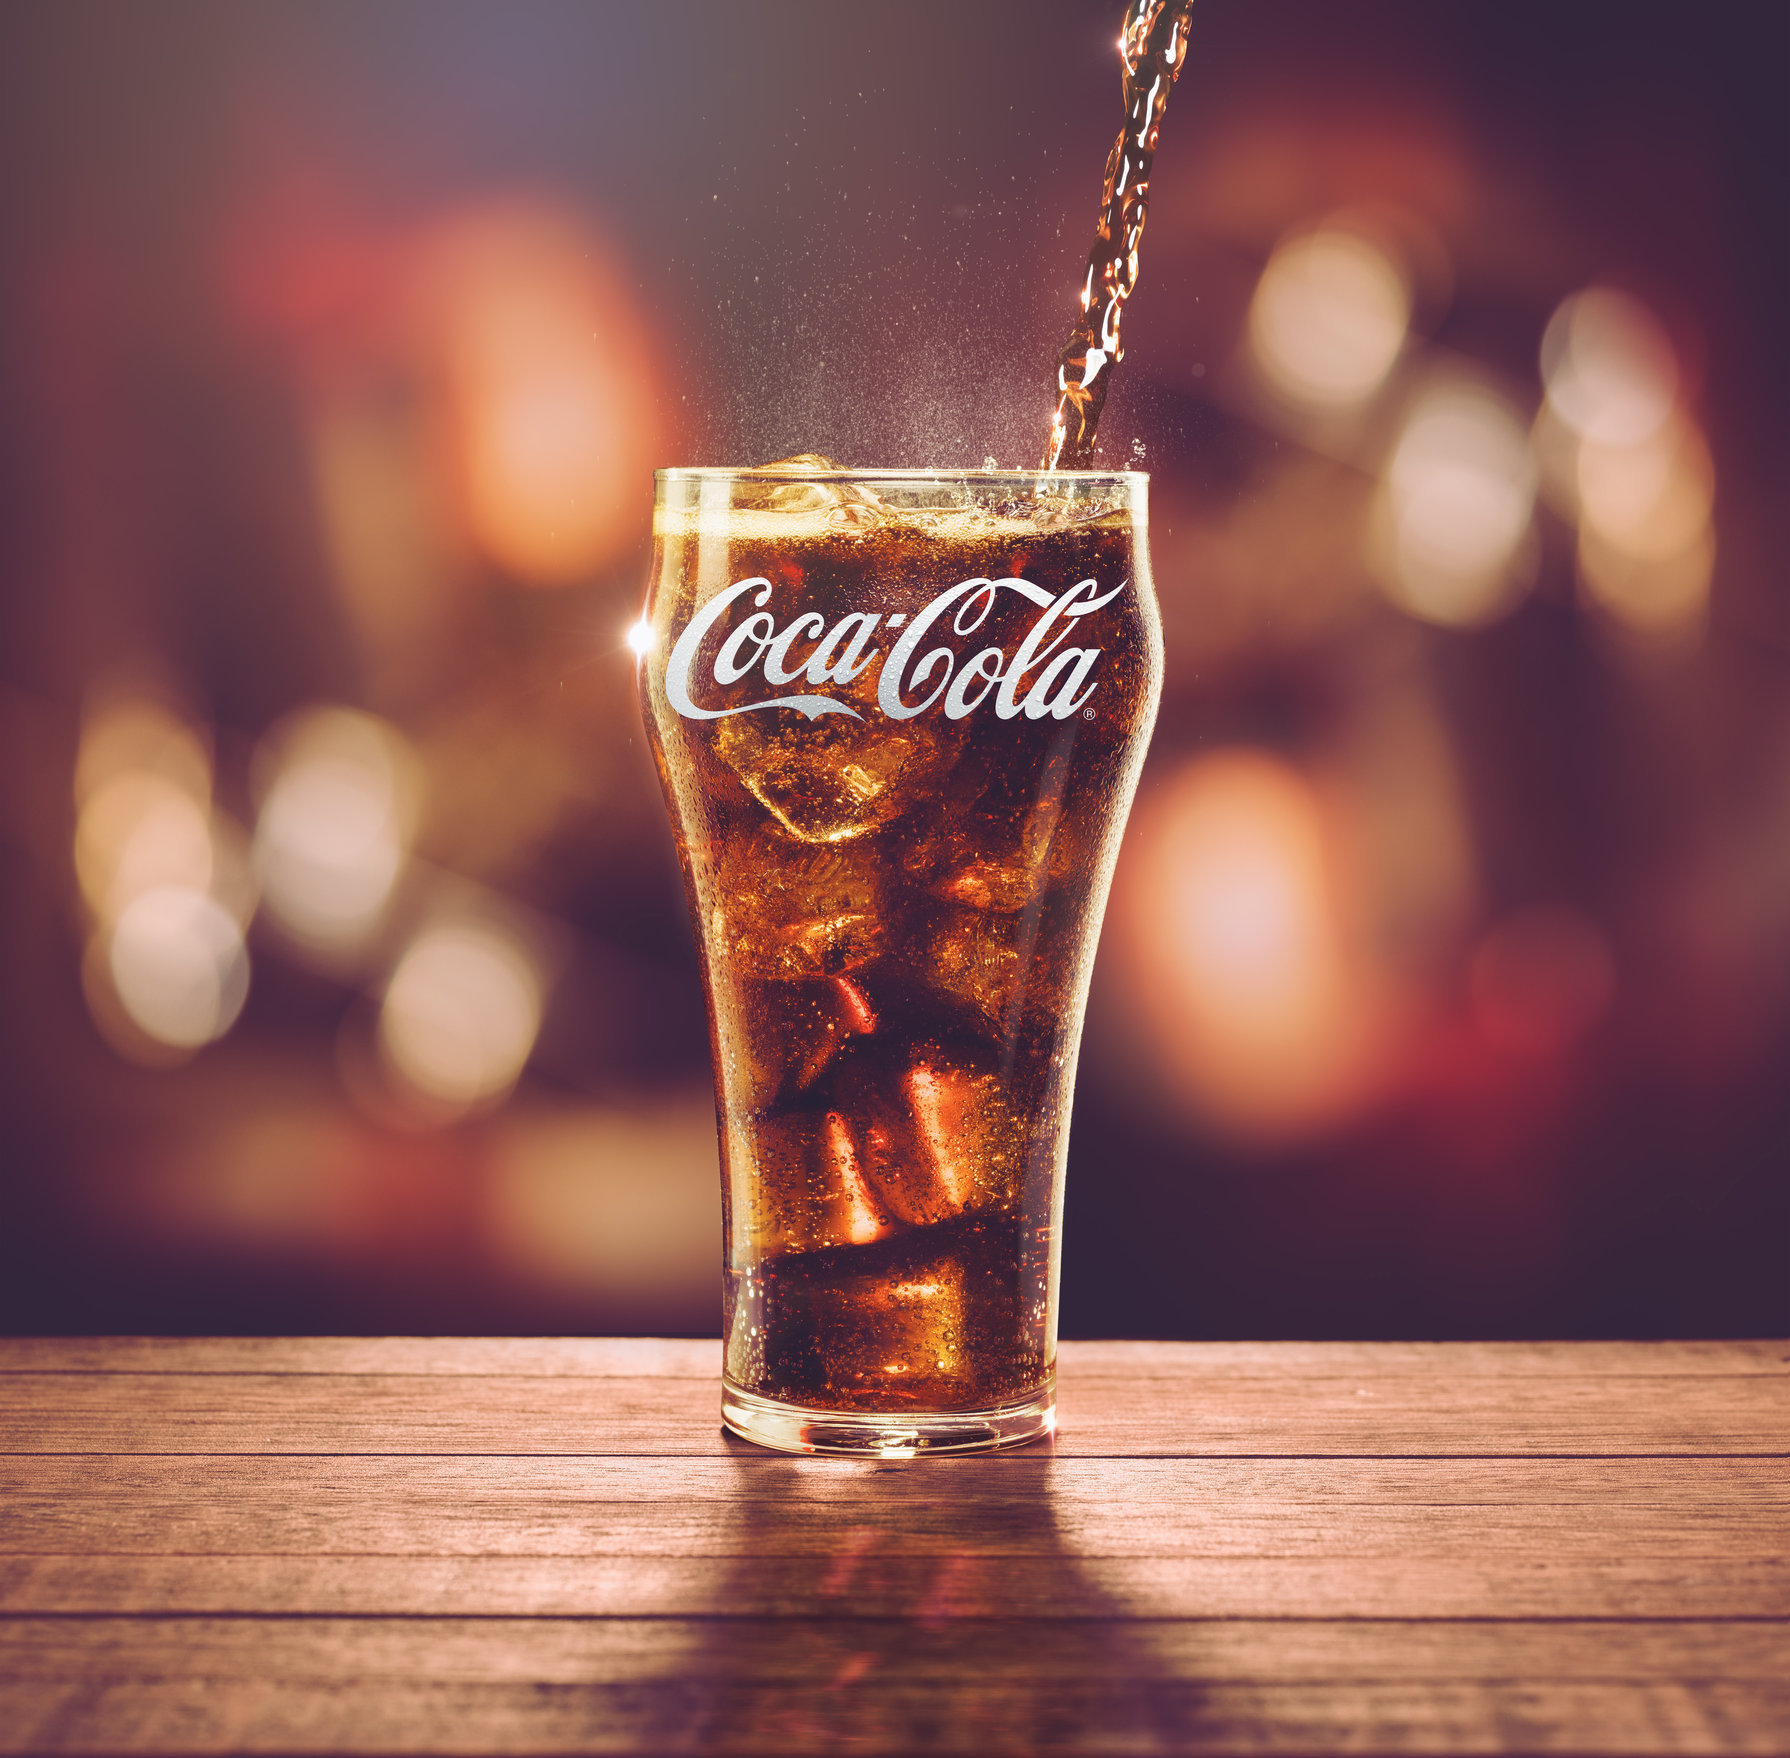 COCA COLA / AGENCY: OGILVY & MATHER  COLOMBIA / SERVE YOUR COKE /